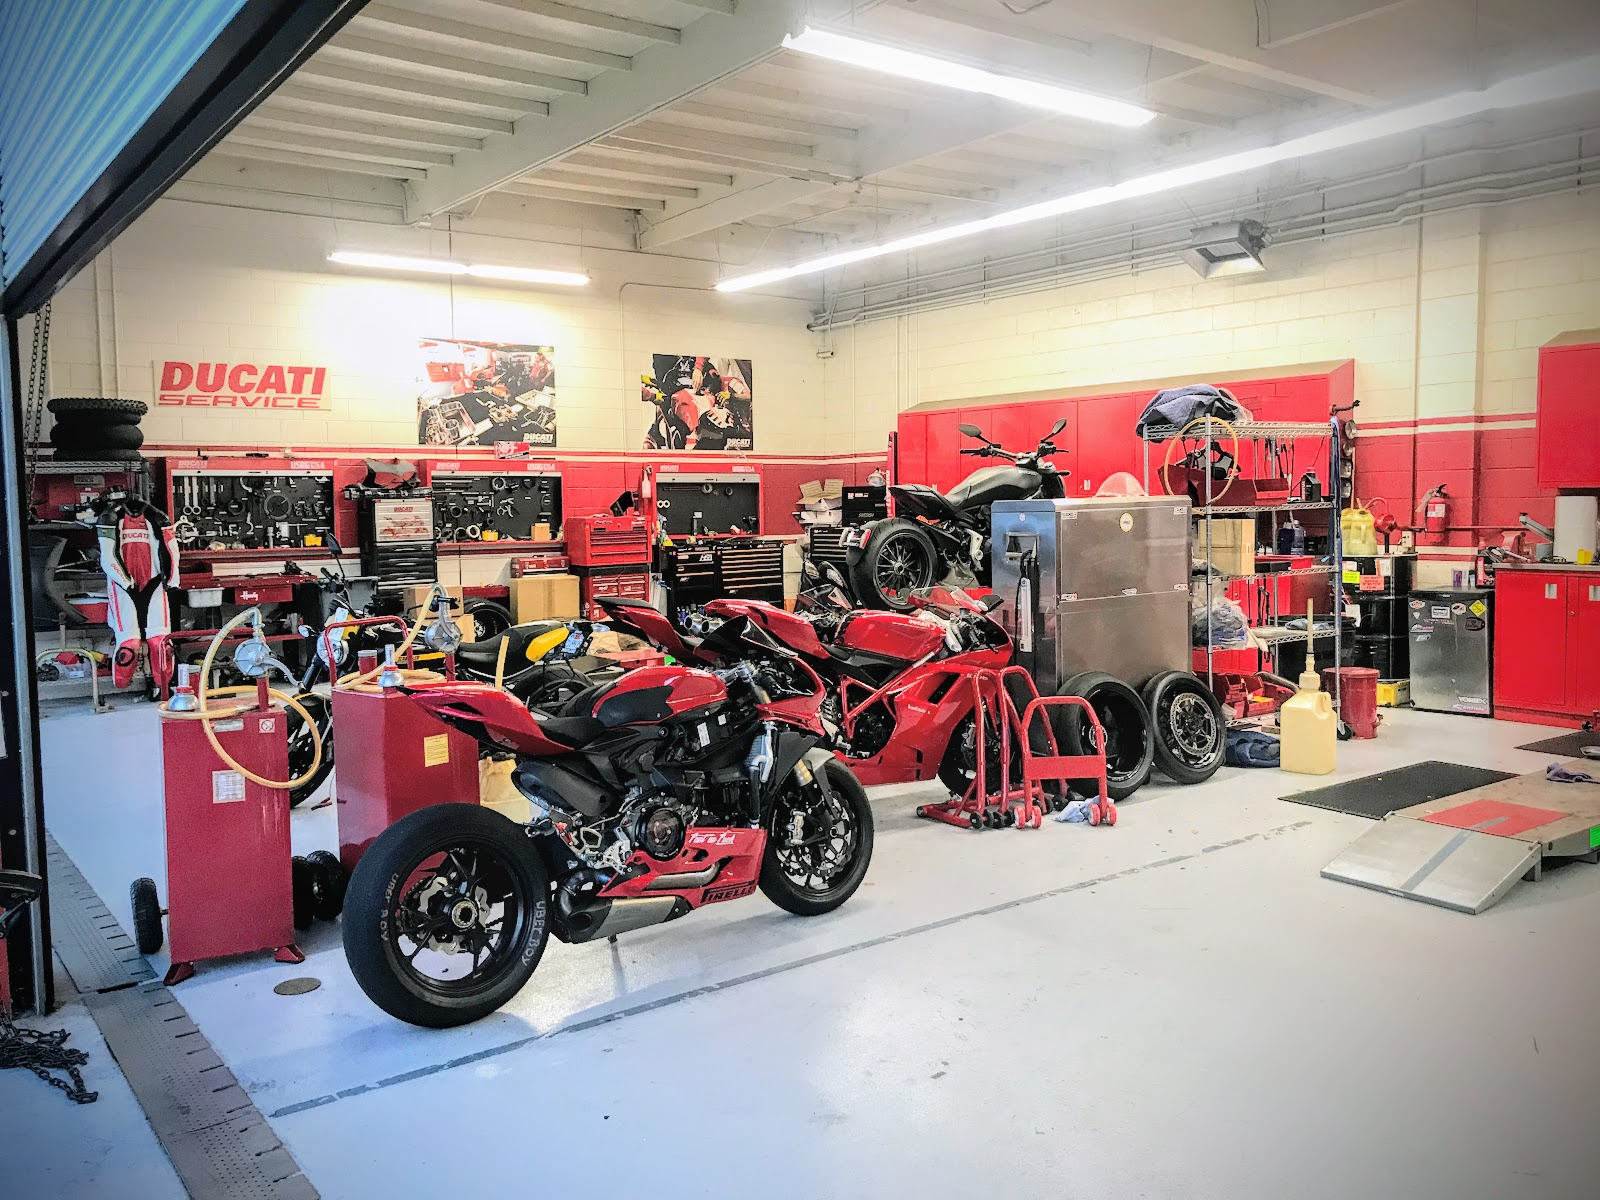 Ducati Travelogue of Tigh Loughhead's Motorcycle Adventures in NYC